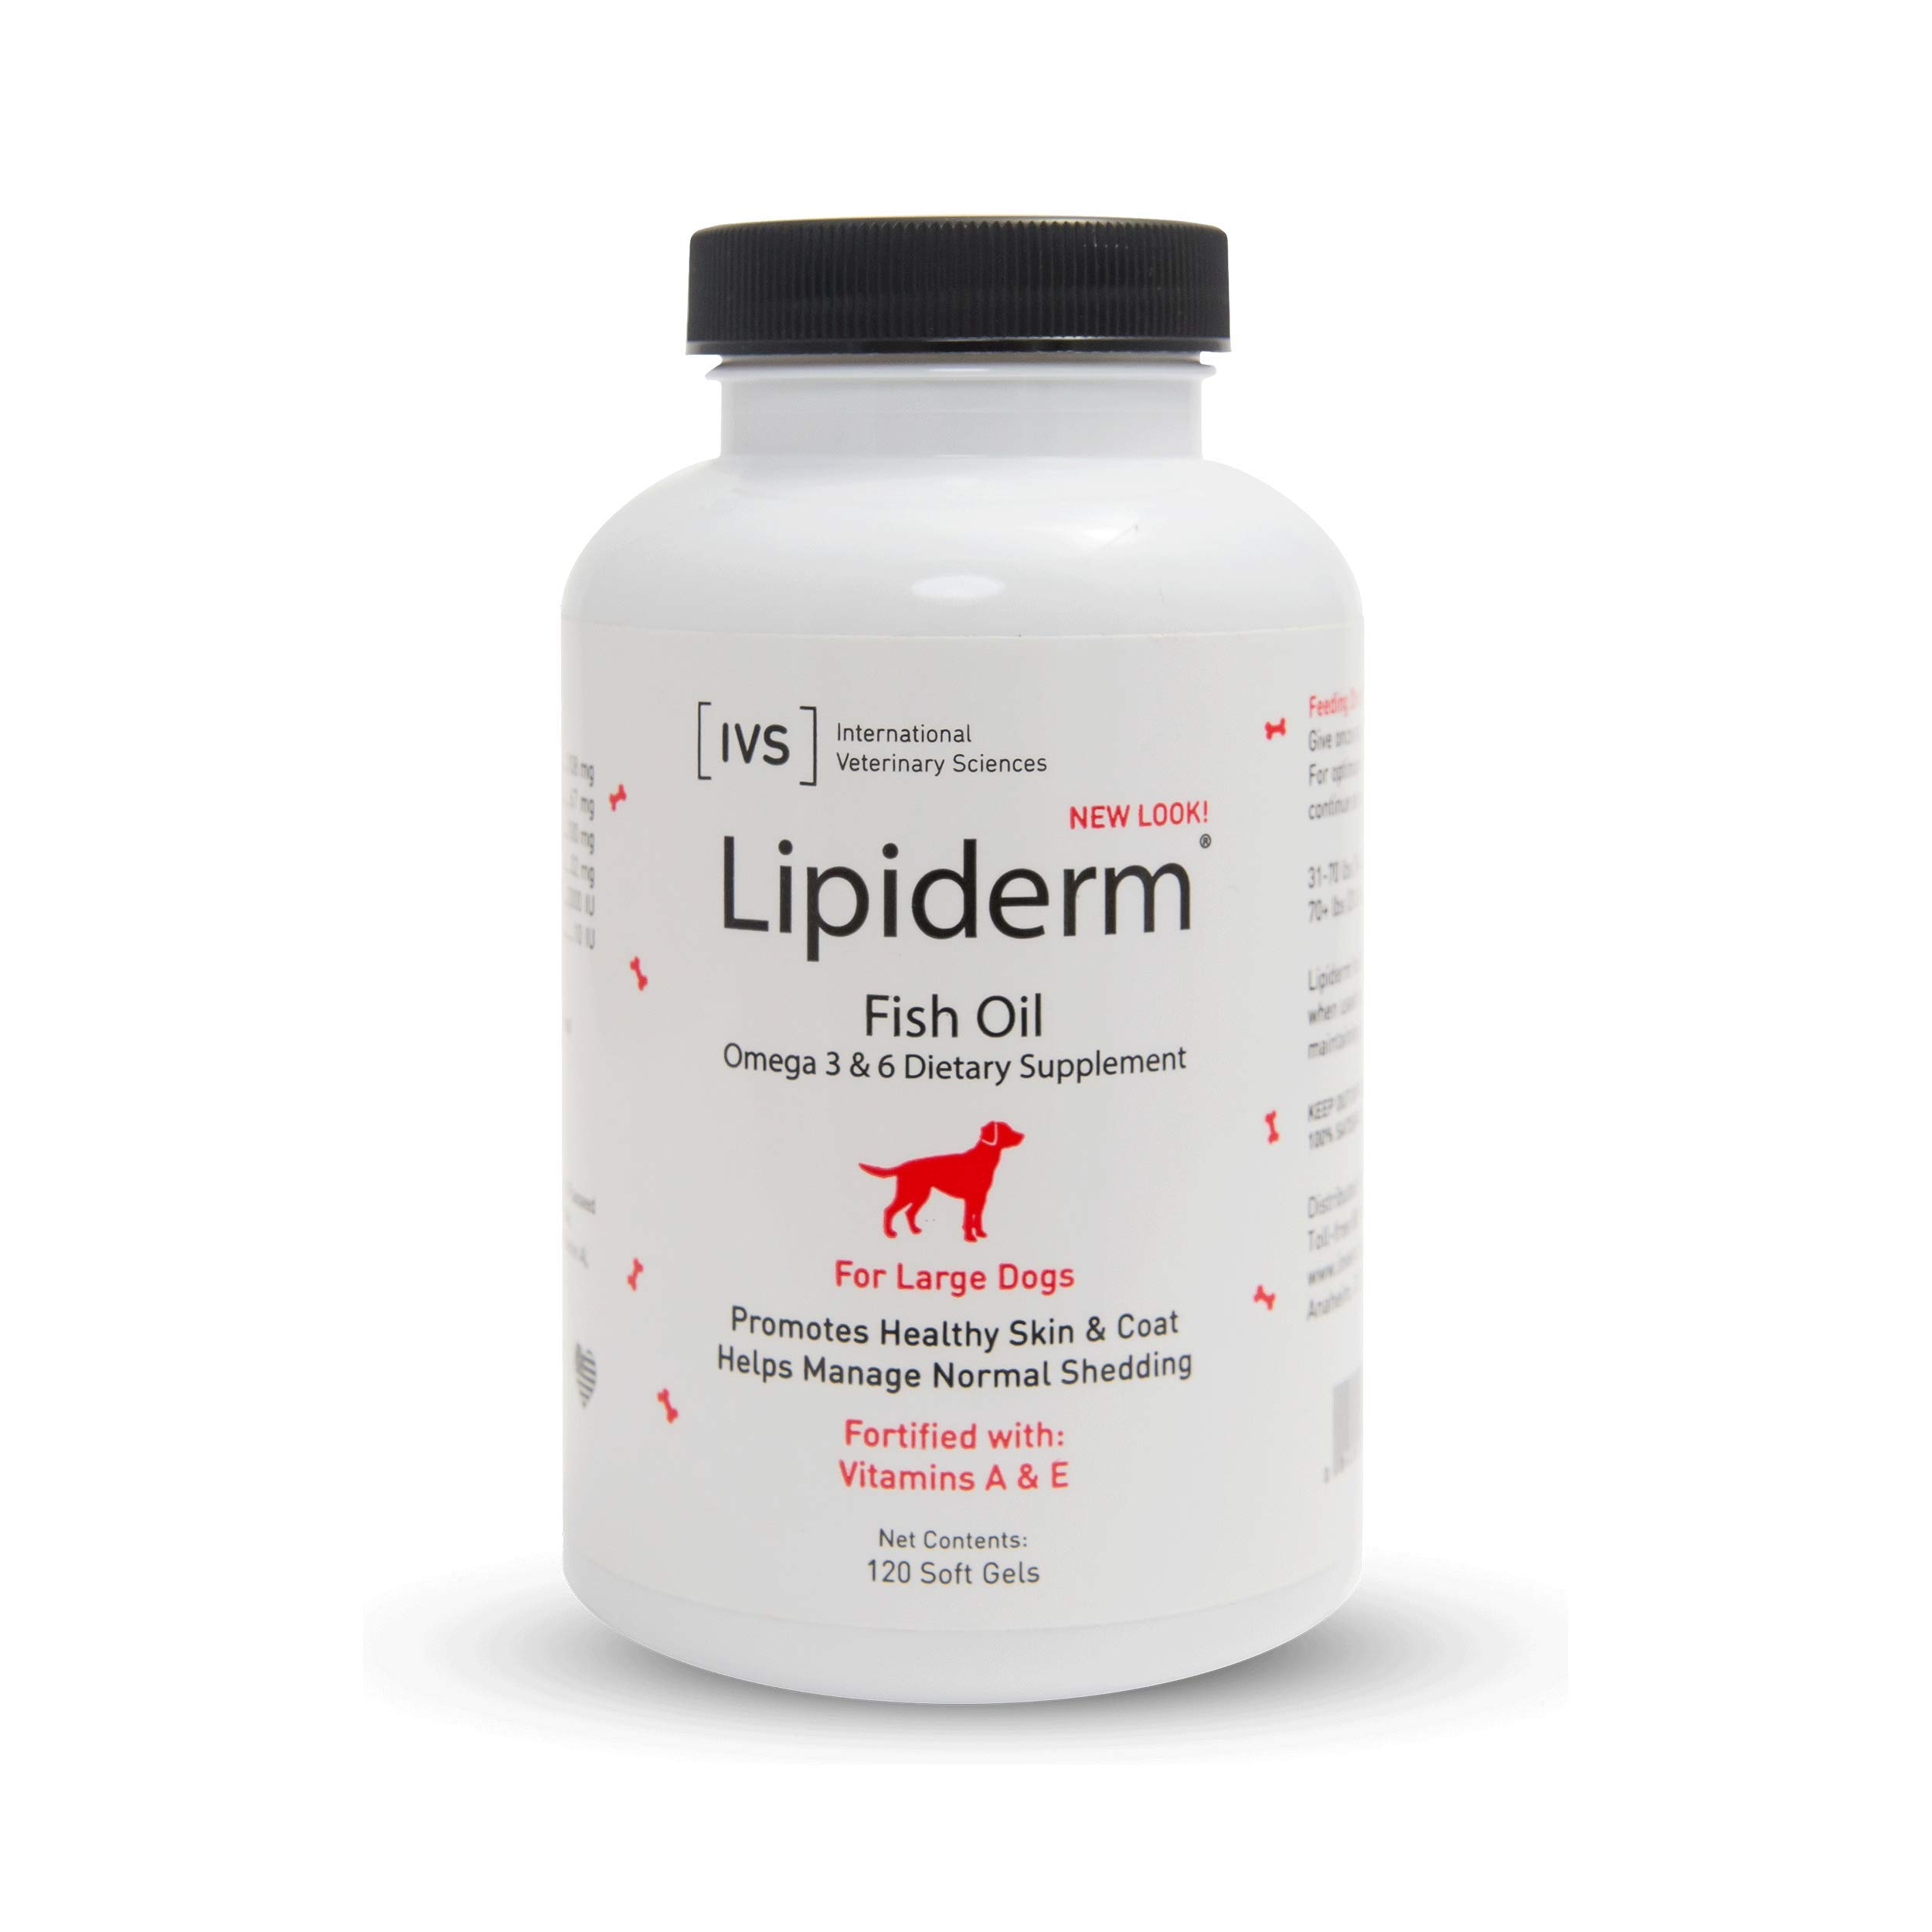 IVS Lipiderm Gel Cap Skin & Coat Supplement for Large Dogs, 120 Count by International Veterinary Sciences